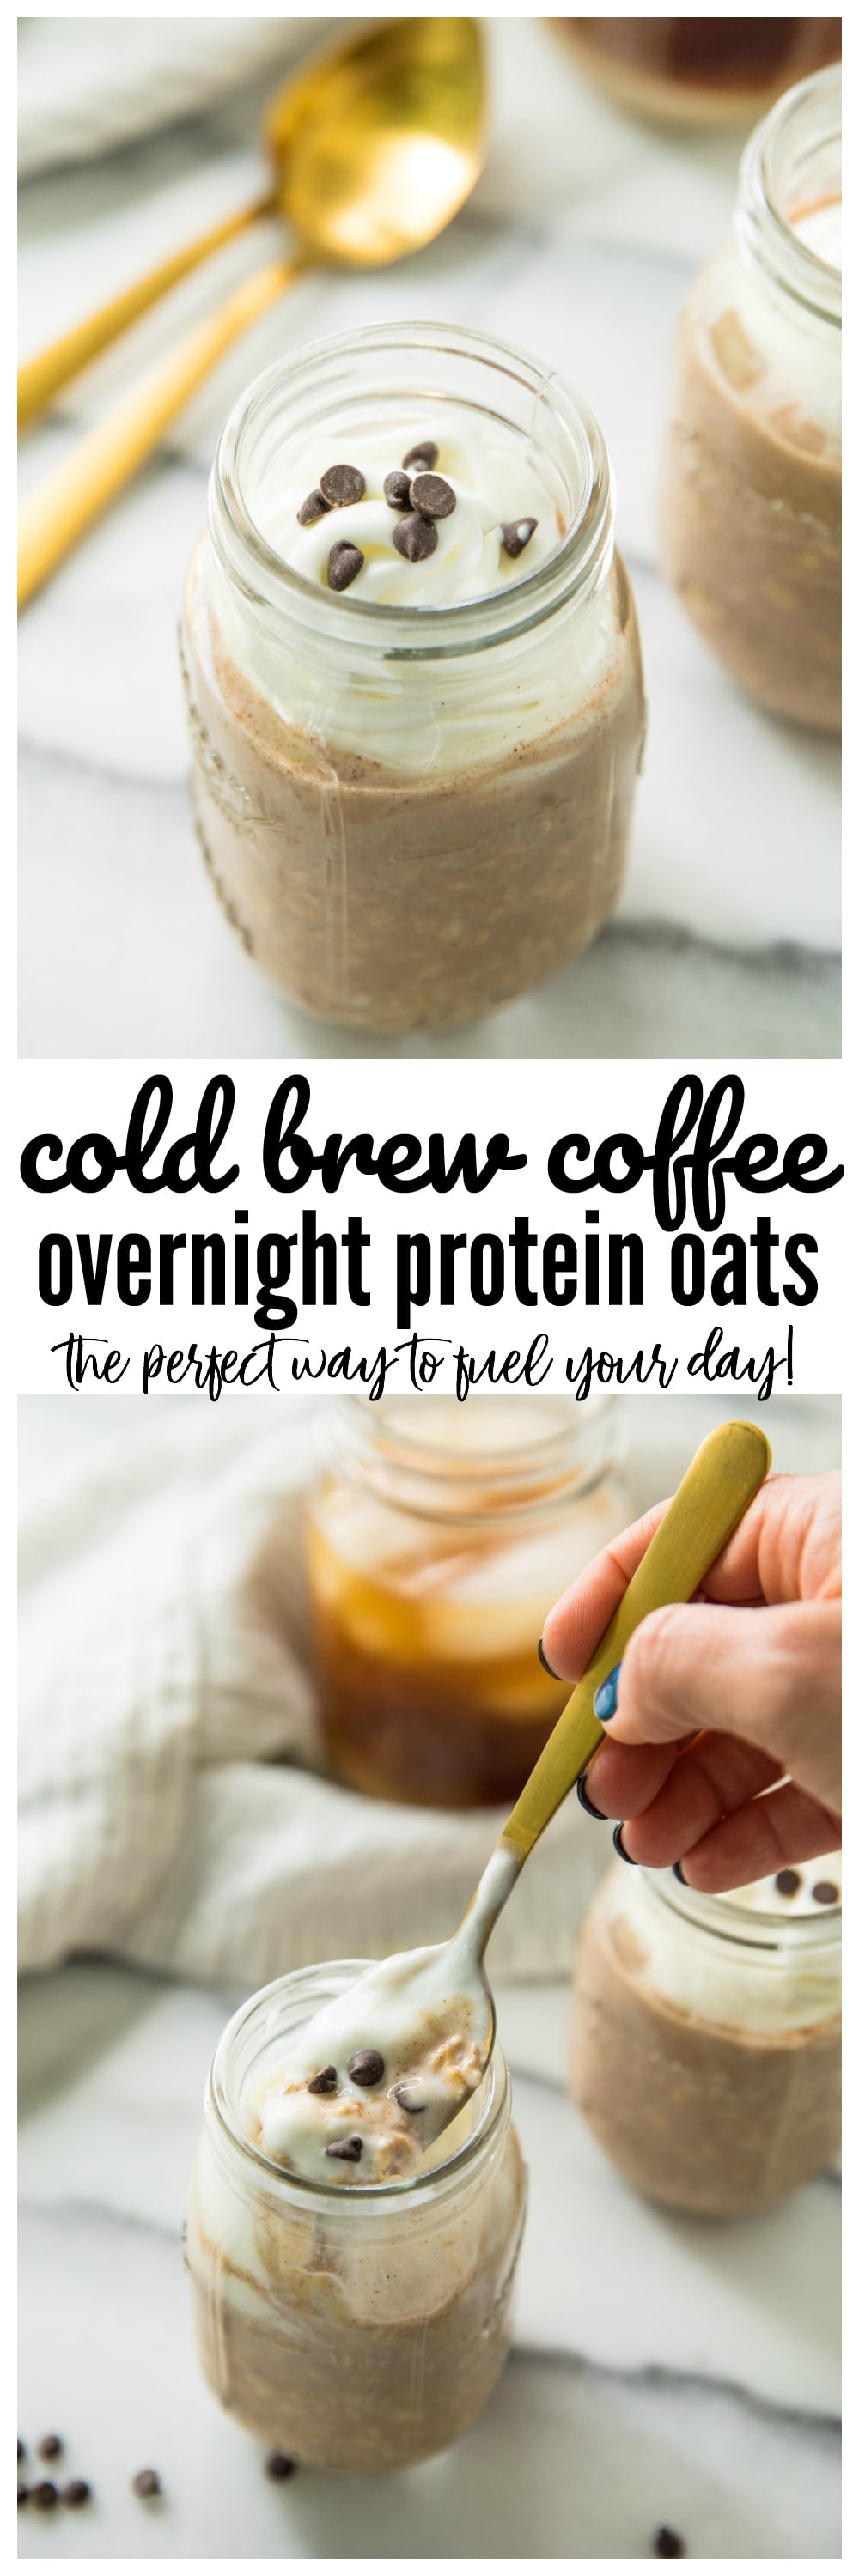 With a combination of cold brew and oatmeal, these Cold Brew Coffee Overnight Protein Oats are the perfect way to start your day! If you're a coffee fan, you will love the taste of these overnight oats, which have the perfect balance of complex carbs and protein to fuel your day!